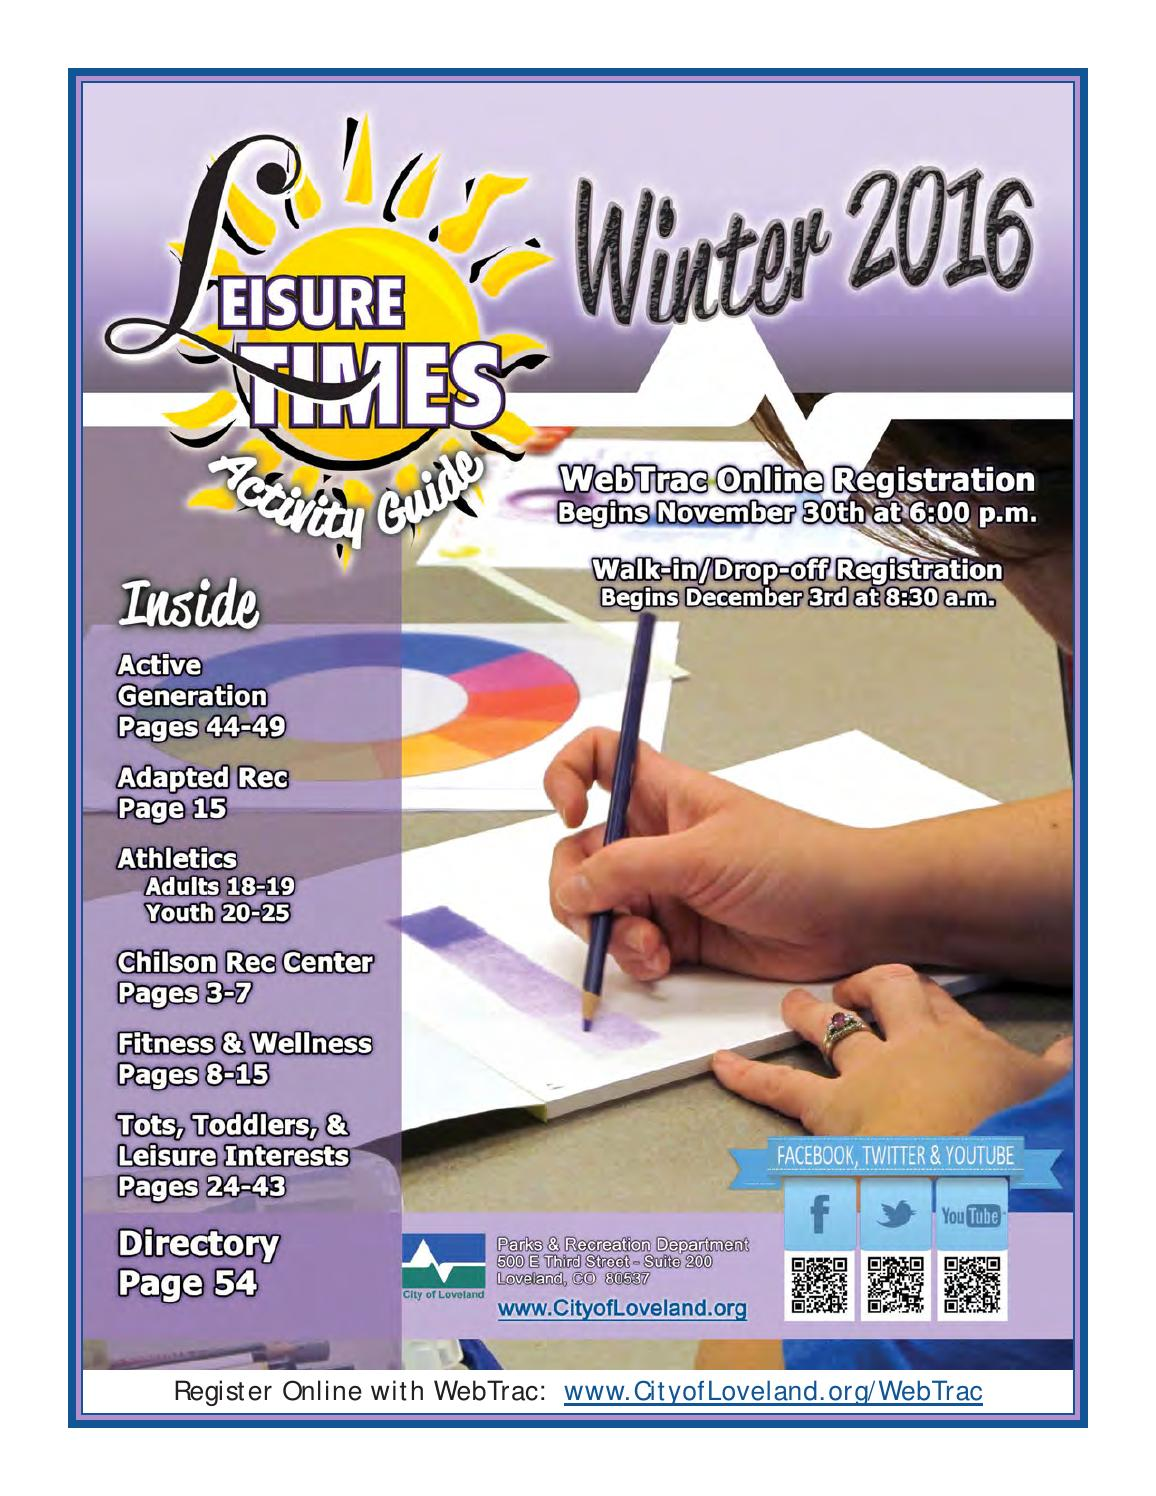 winter 2016 leisure times activity guide by city of loveland - parks